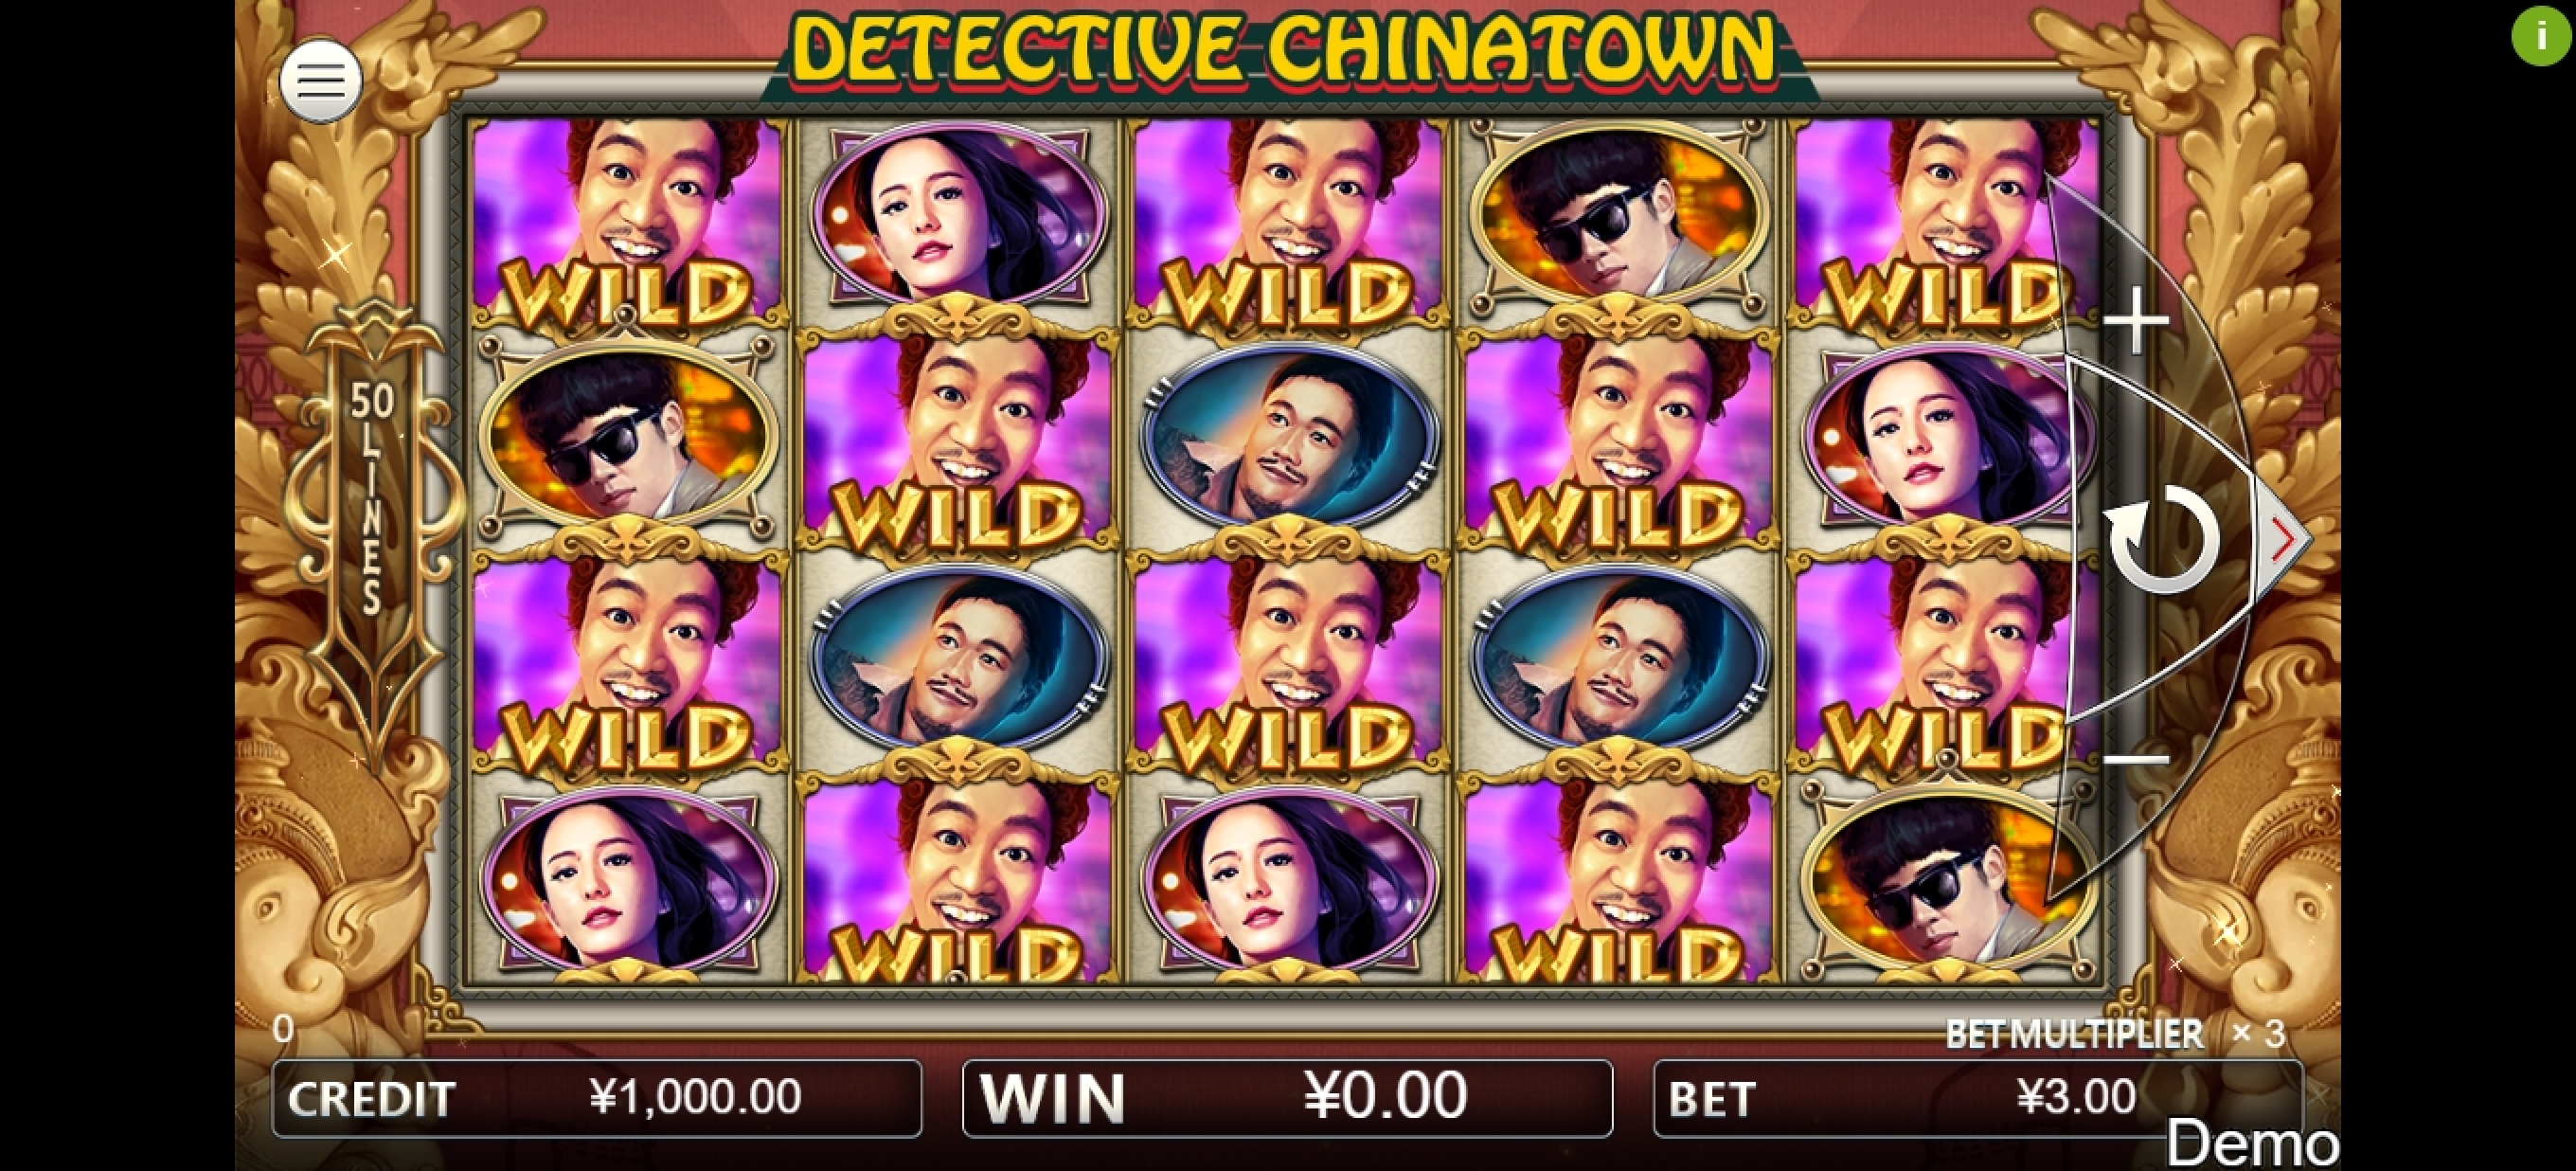 Reels in Detective Chinatown Slot Game by Iconic Gaming